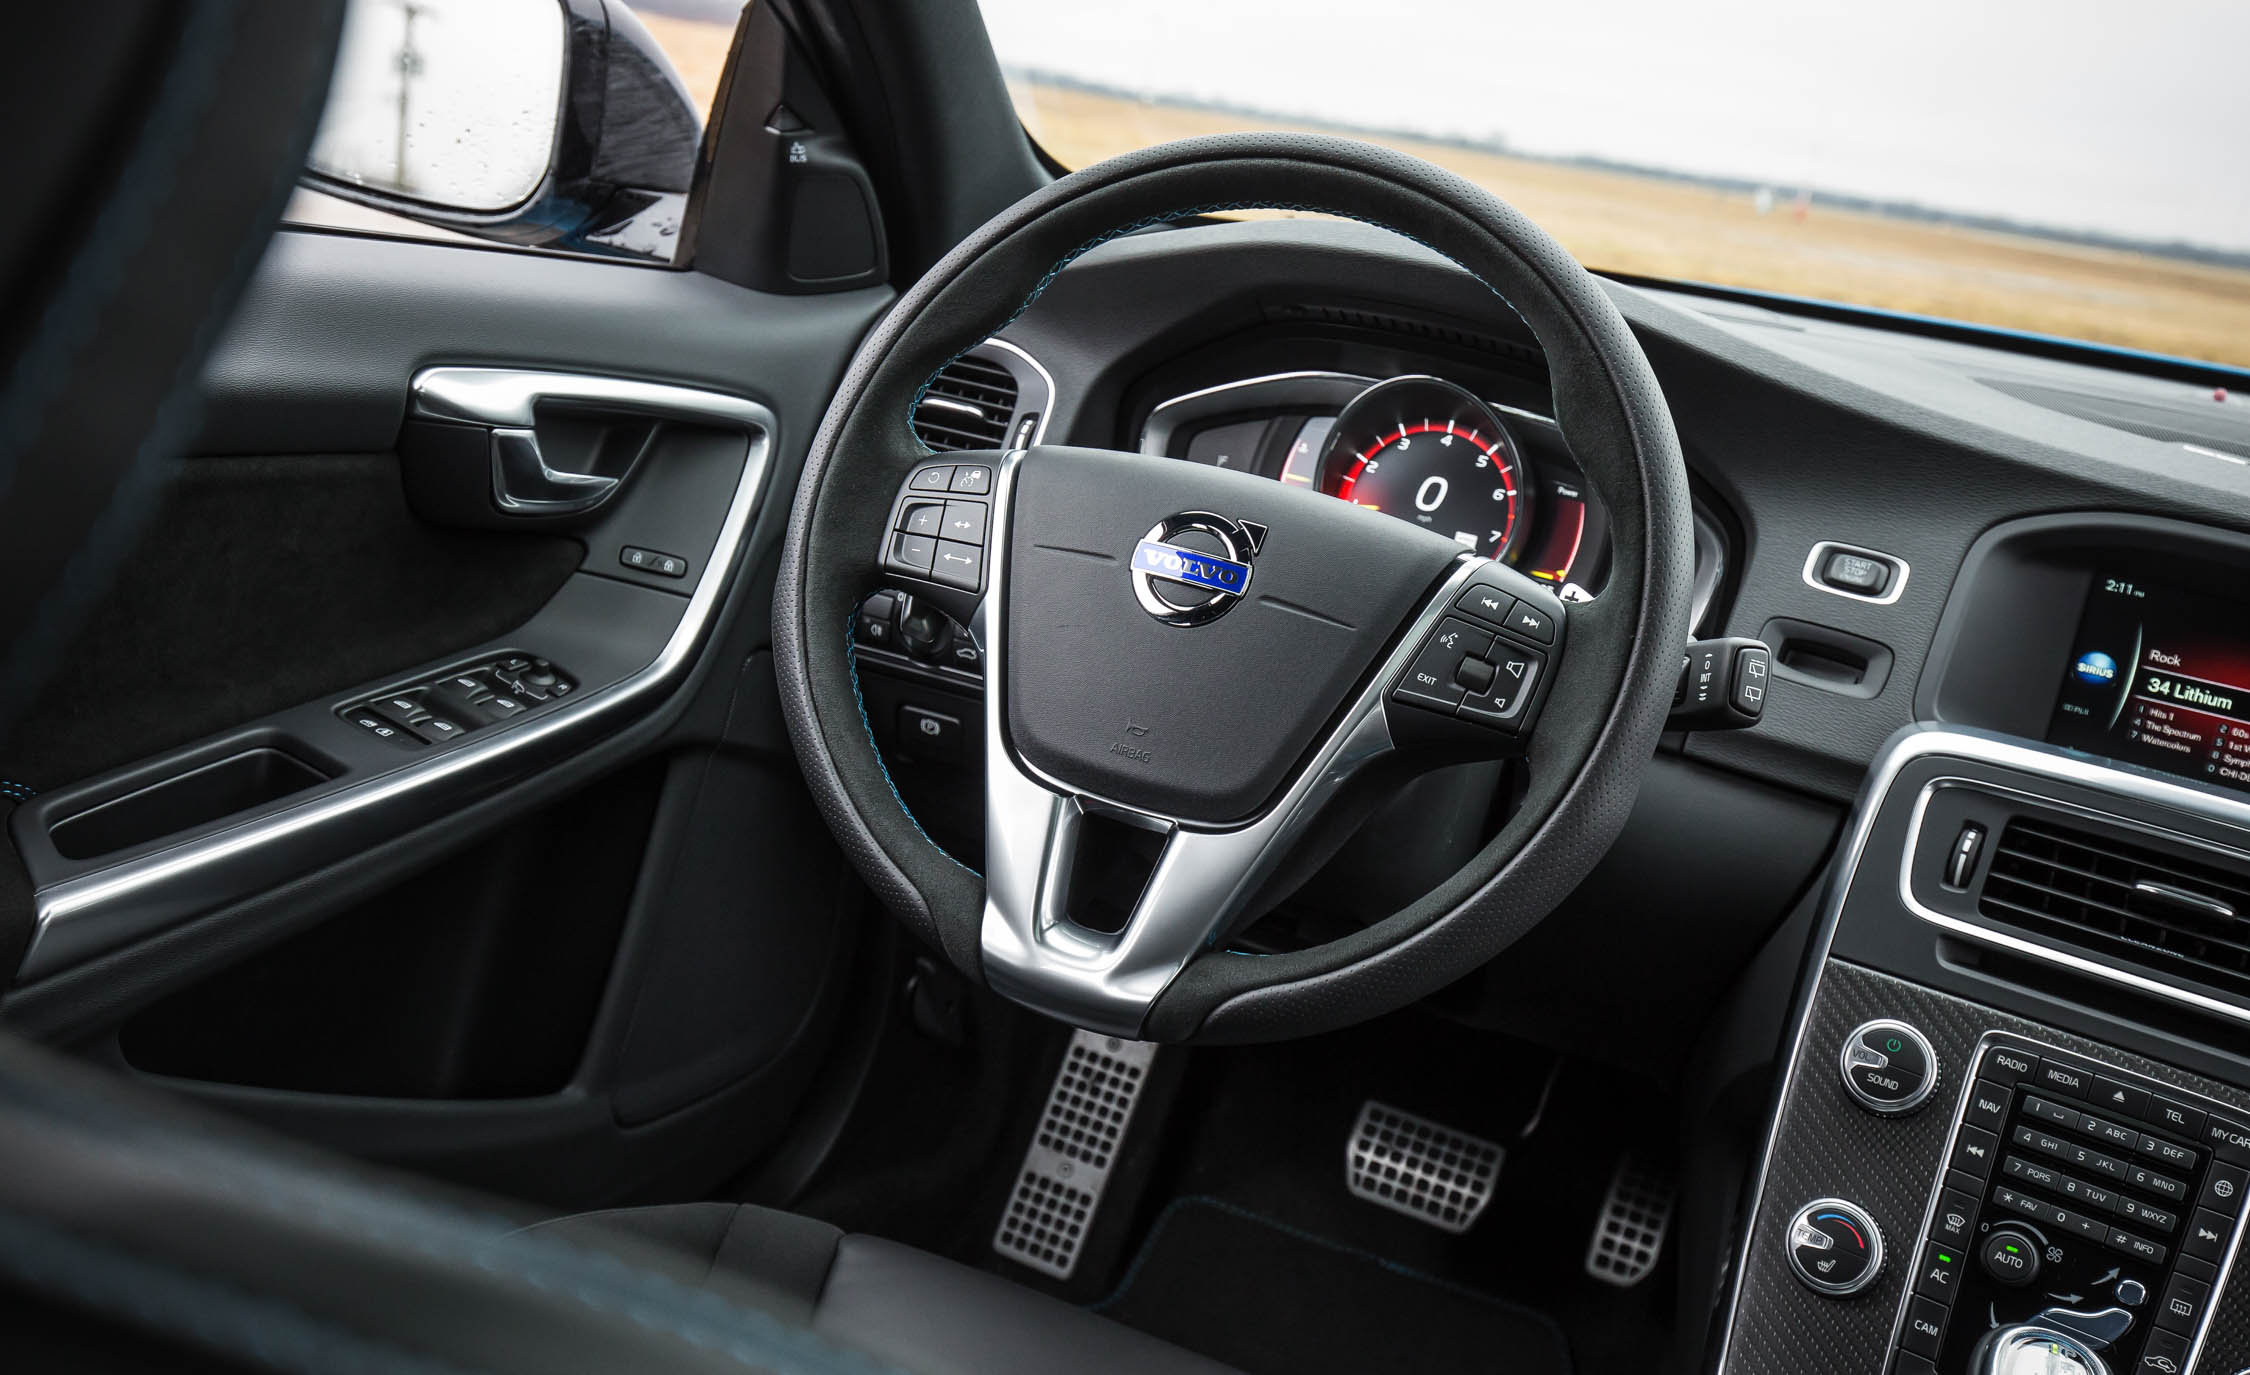 2017 Volvo V60 Polestar Interior Cockpit Steering (Photo 20 of 53)